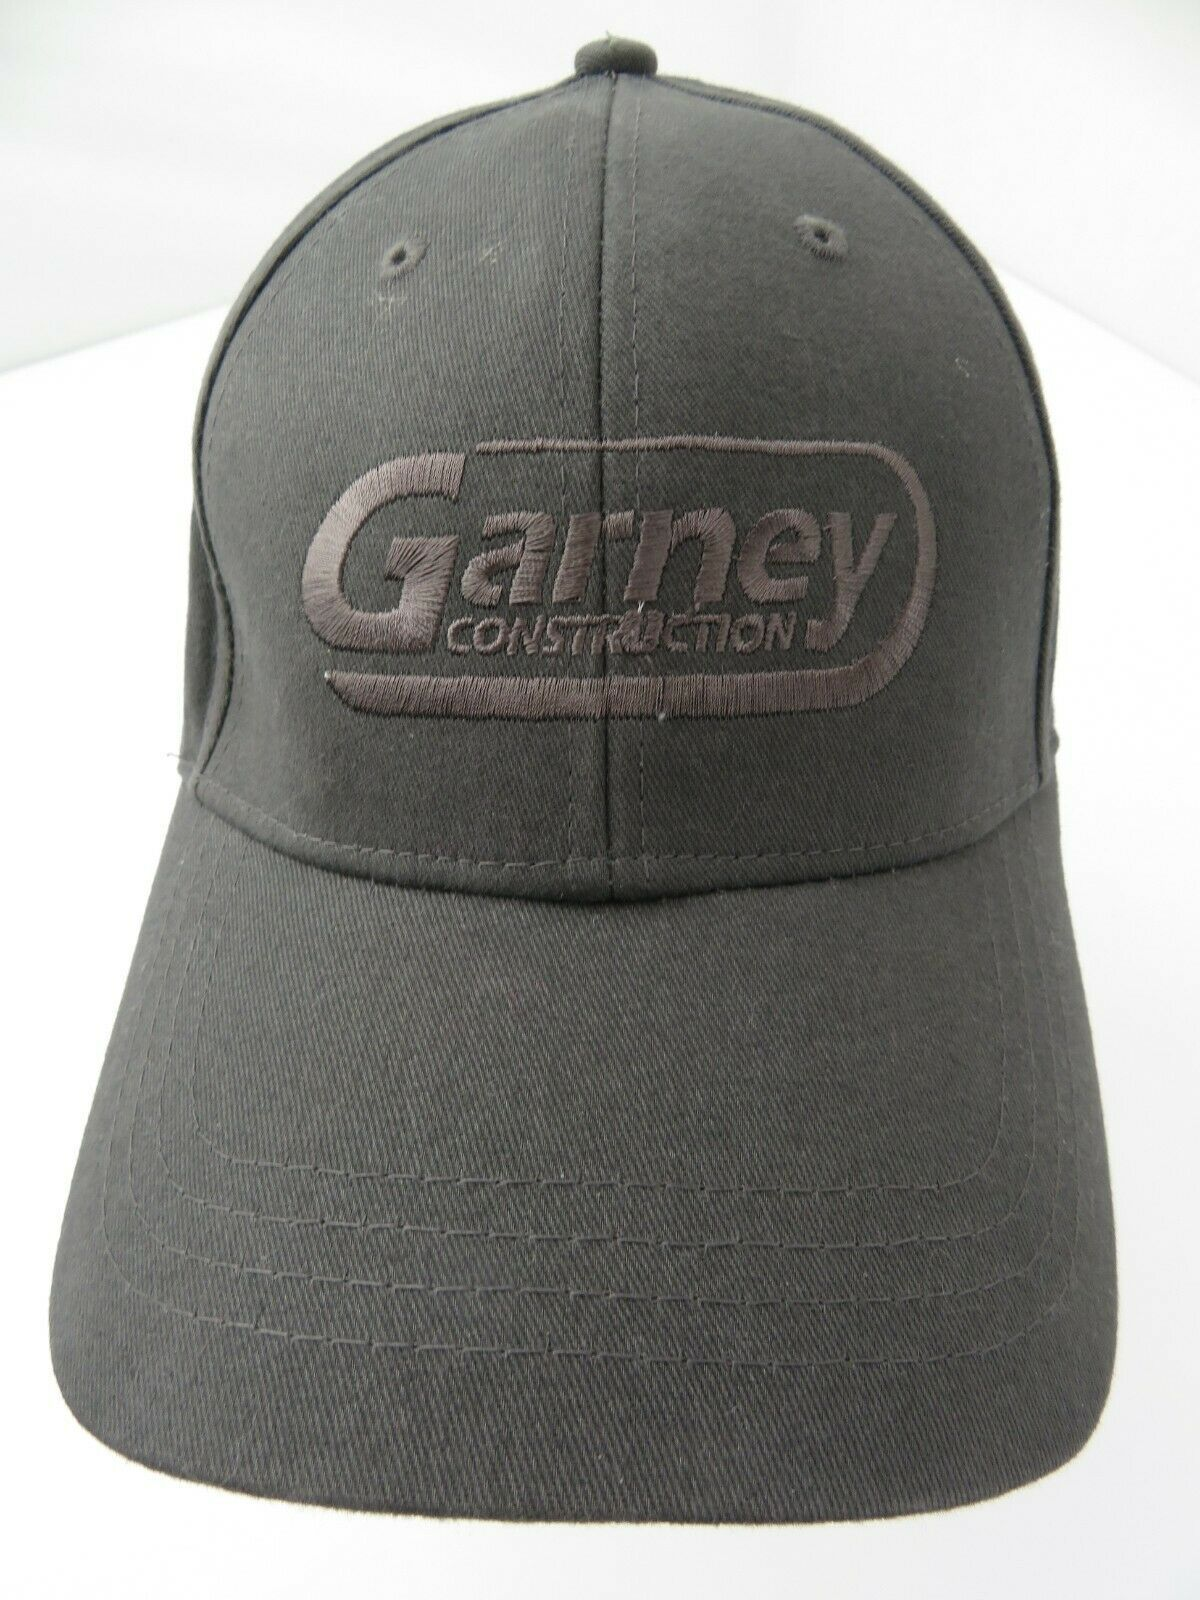 Primary image for Garney Construction Adjustable Adult Cap Hat